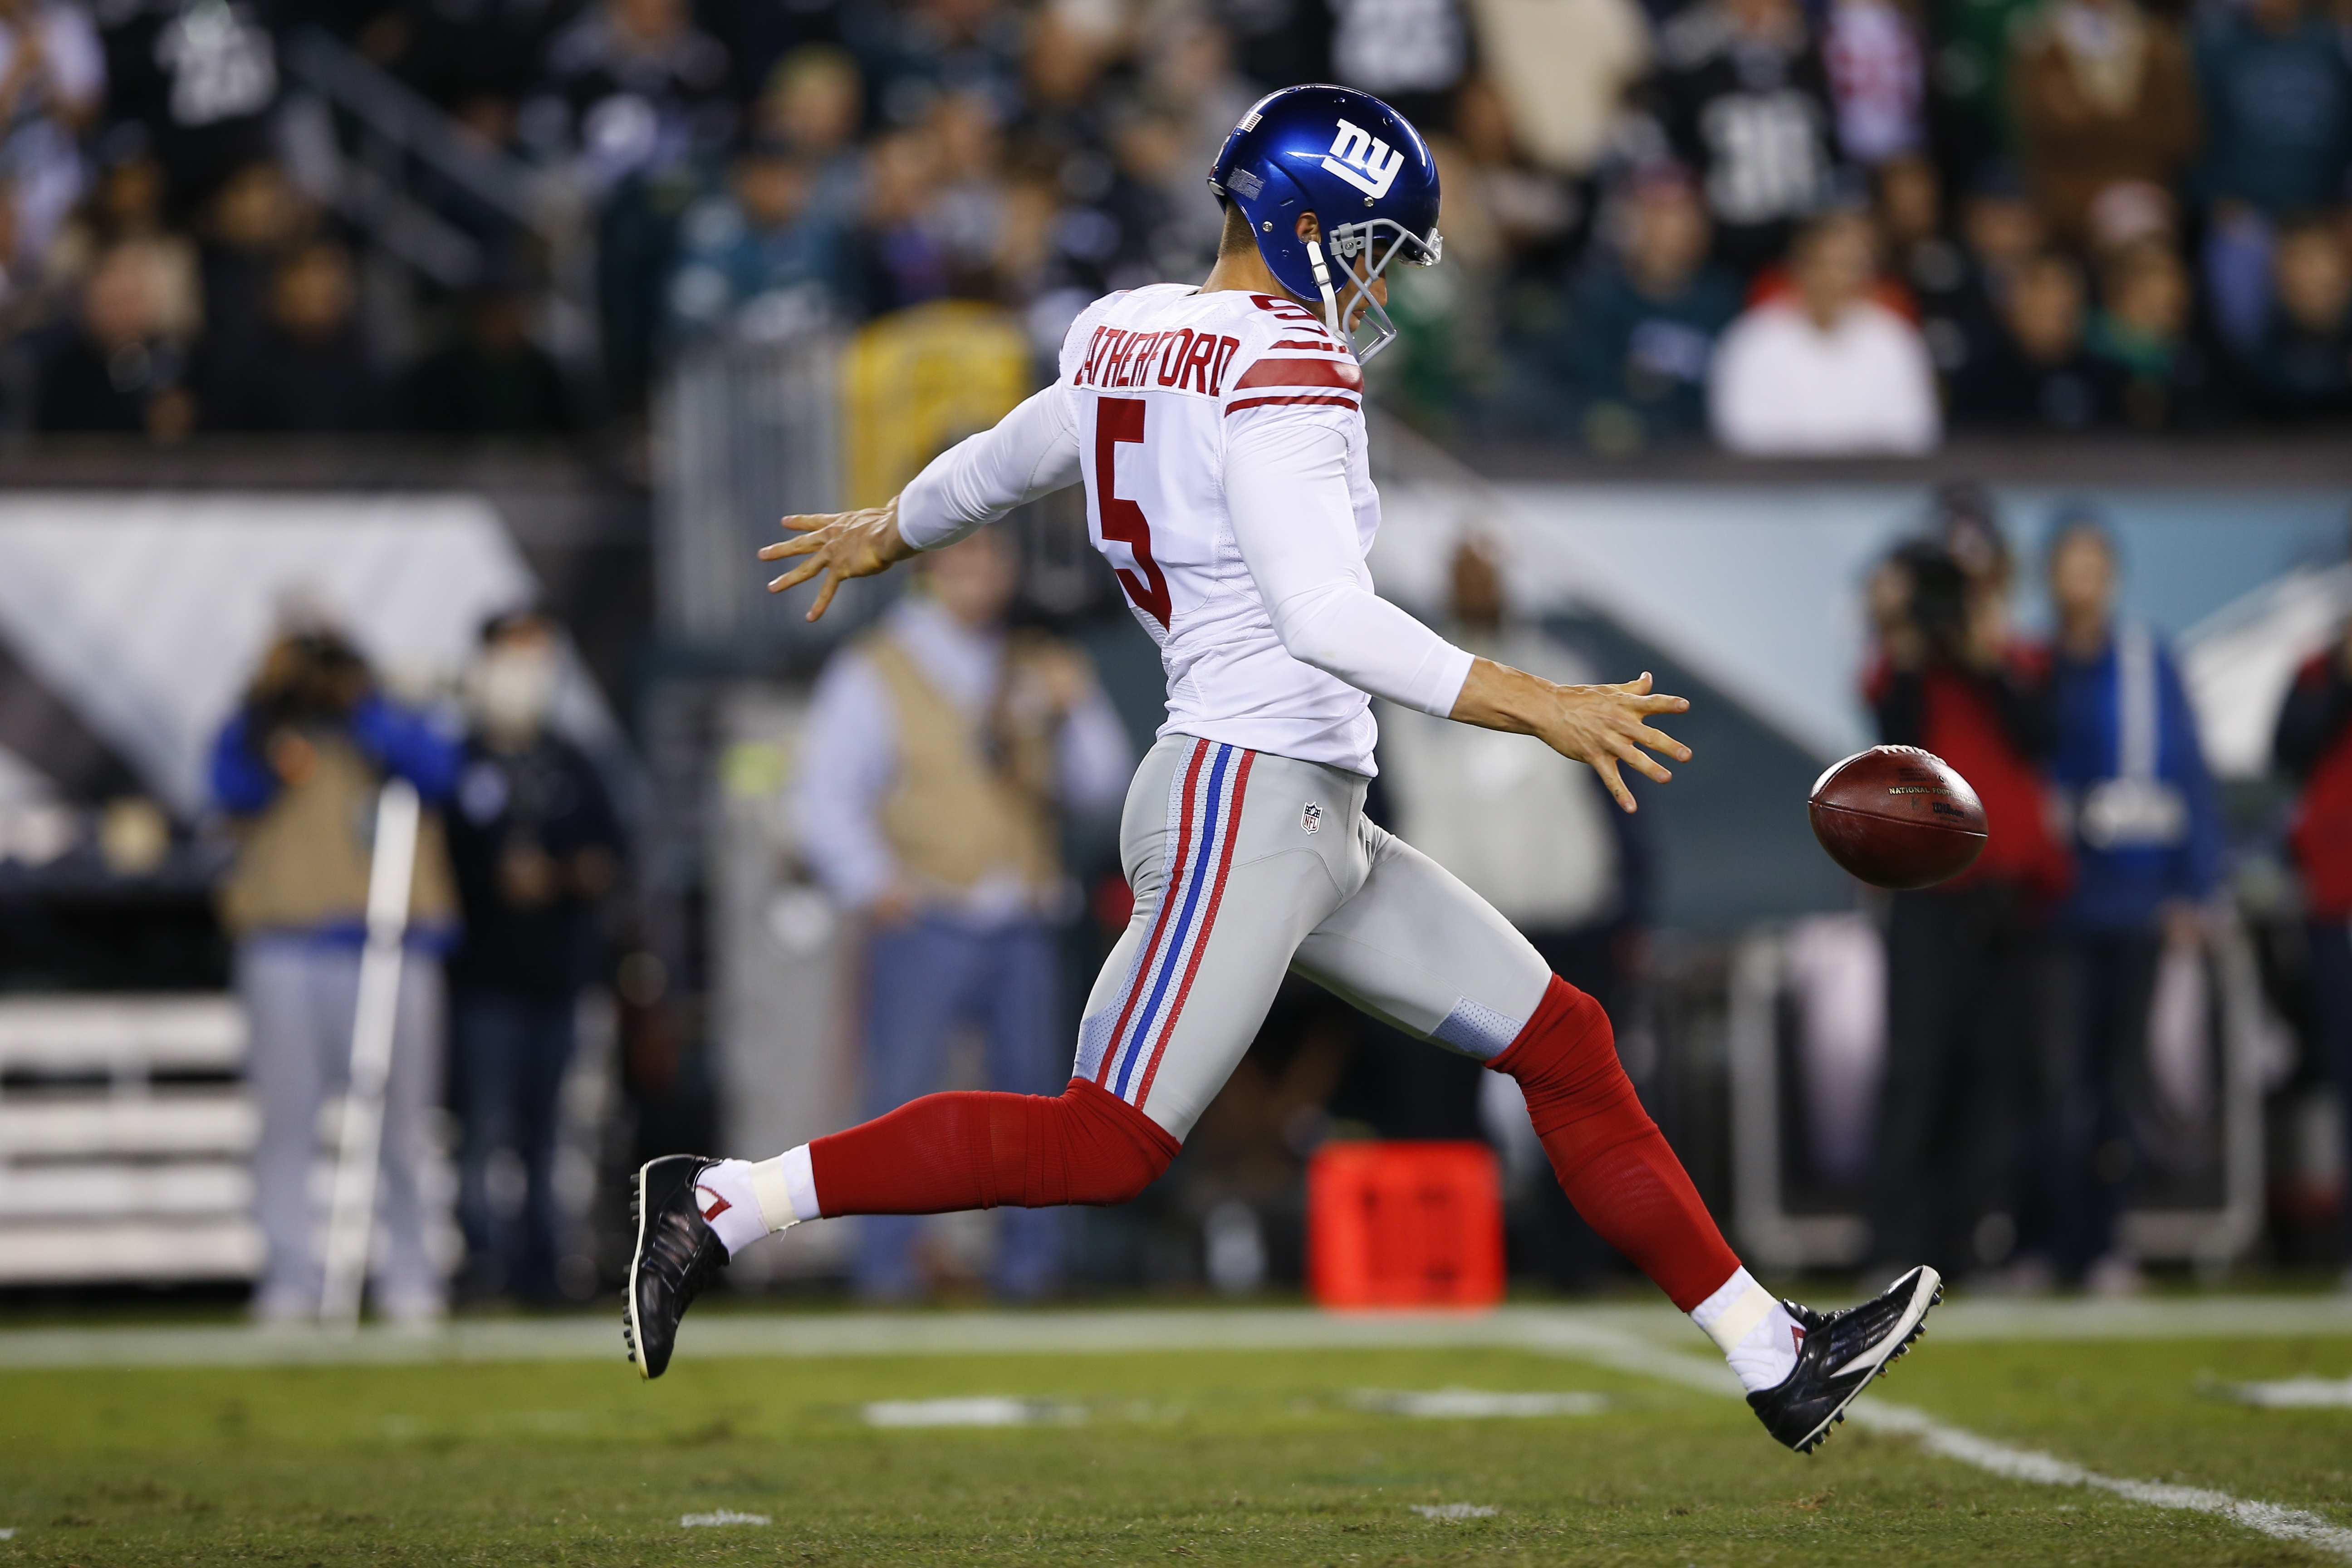 FILE - In this Oct. 12, 2014, file photo, New York Giants' Steve Weatherford punts during the second half of an NFL football game against the Philadelphia Eagles in Philadelphia. The Giants released popular punter Steve Weatherford on Friday, Sept. 4, 201